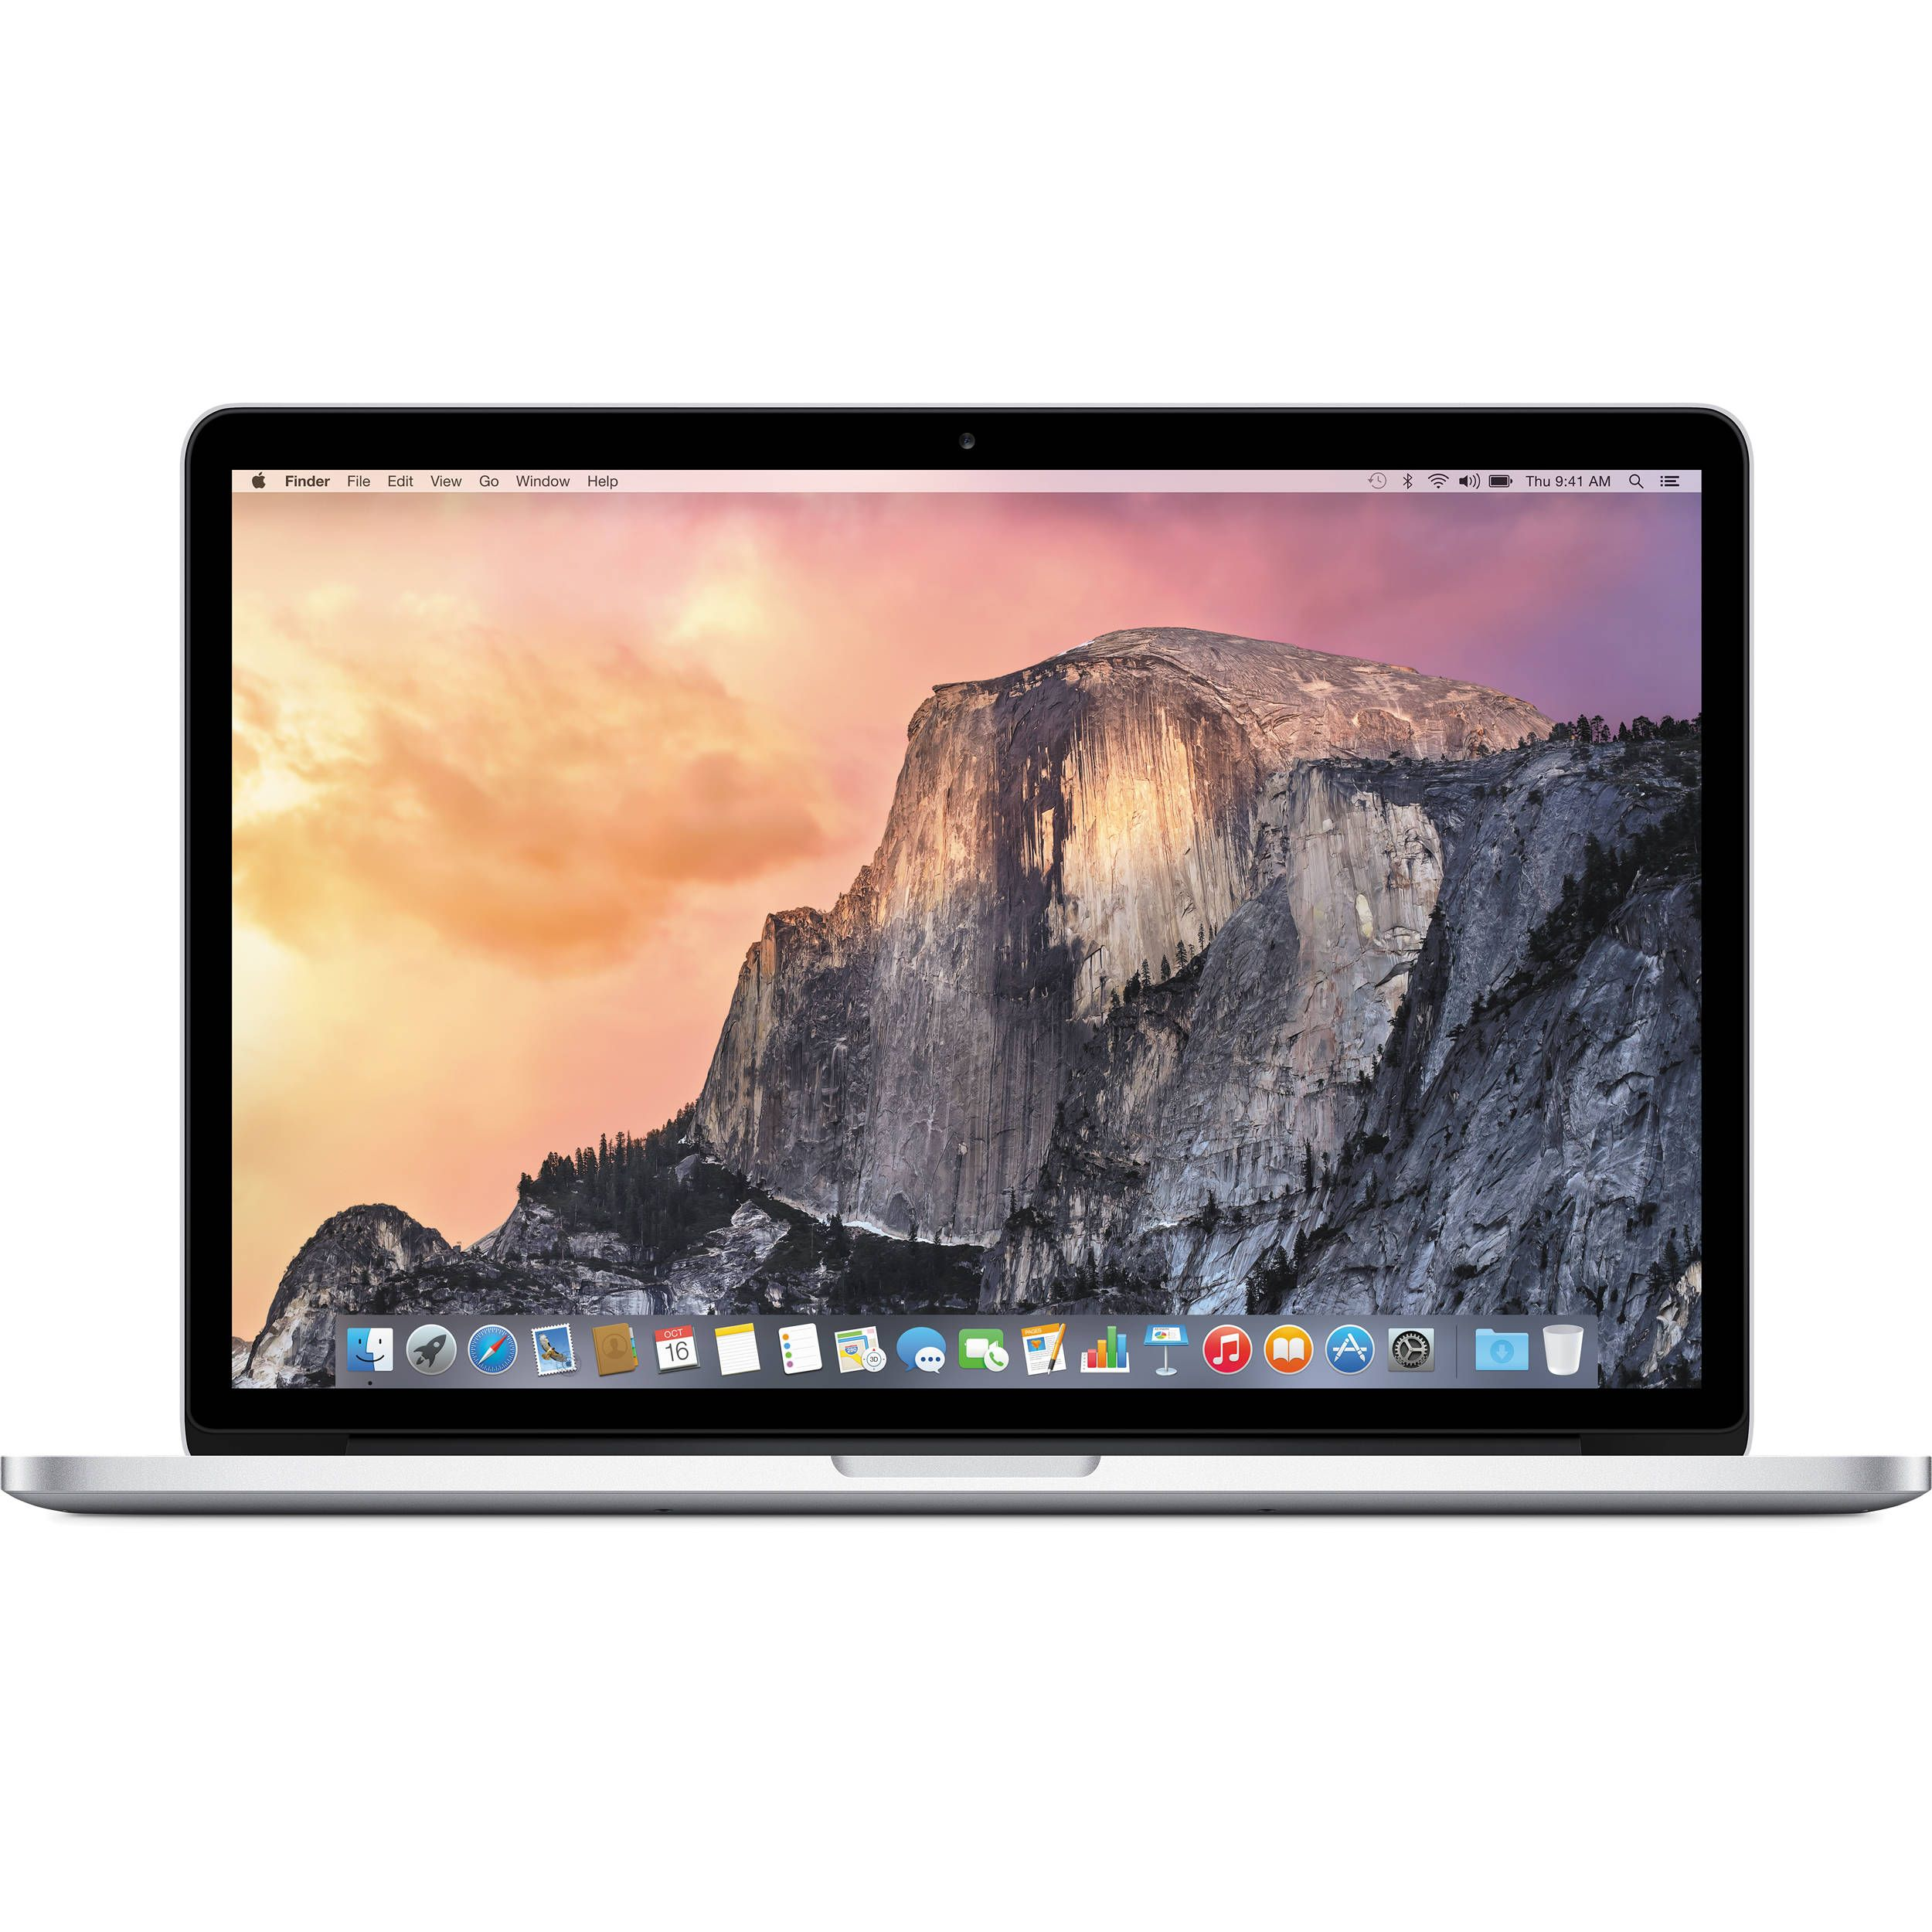 Apple 15 4 Macbook Pro Laptop Computer With Retina Display Force Touch Trackpad Mid 2015 Apple Laptop Buy Macbook Apple Macbook Pro